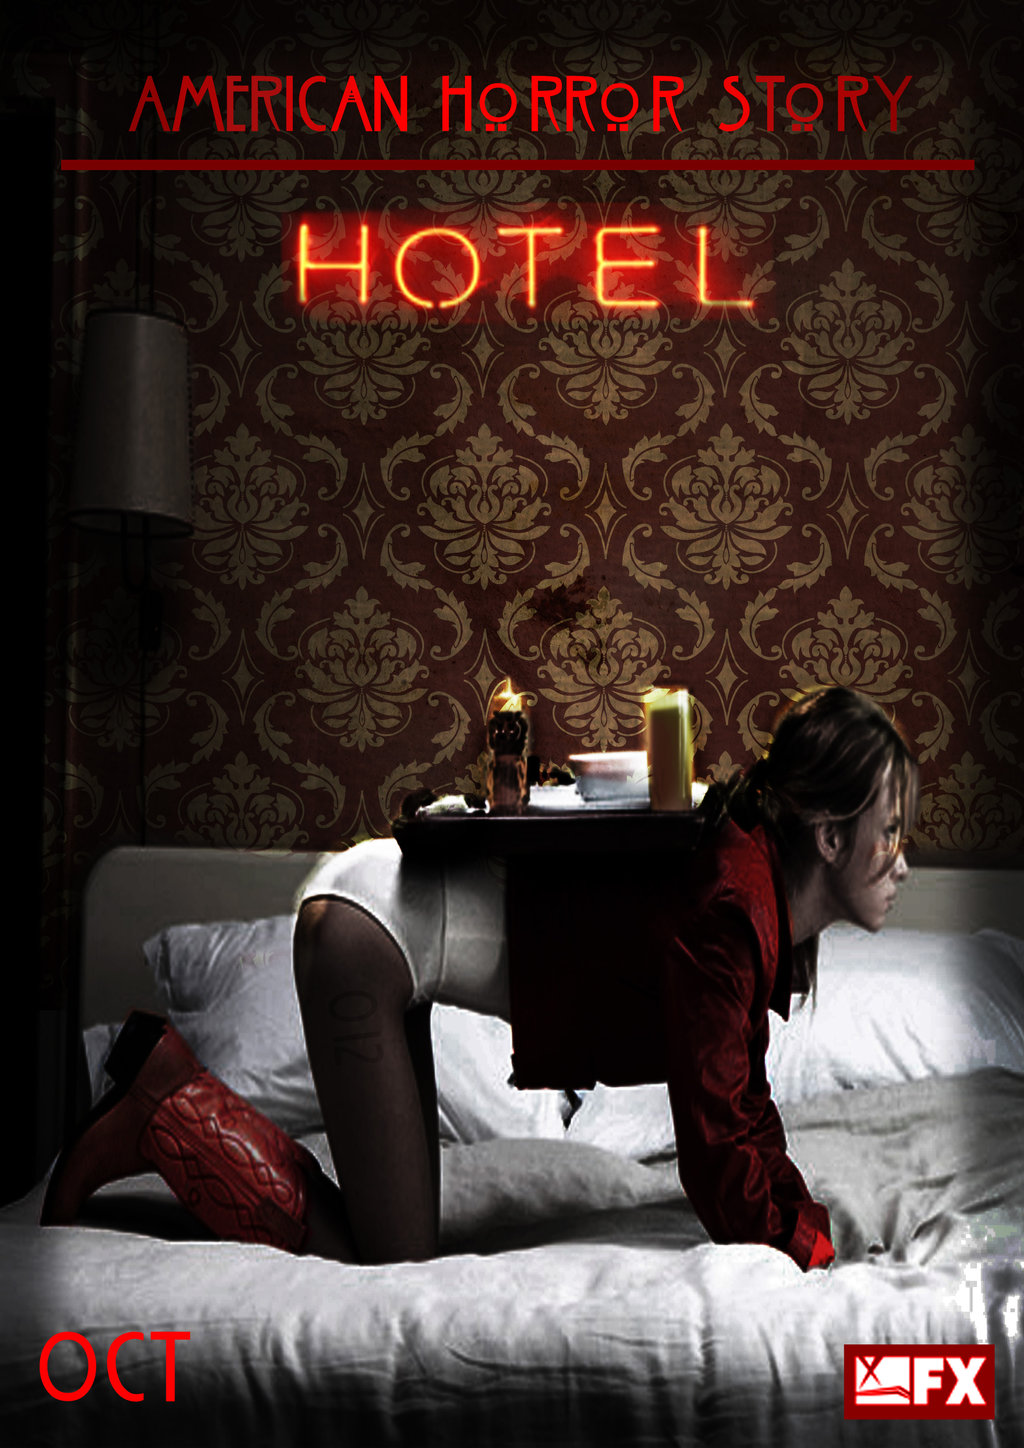 American Horror Story Hotel No4 Room Service by morrallshortie on 1024x1448